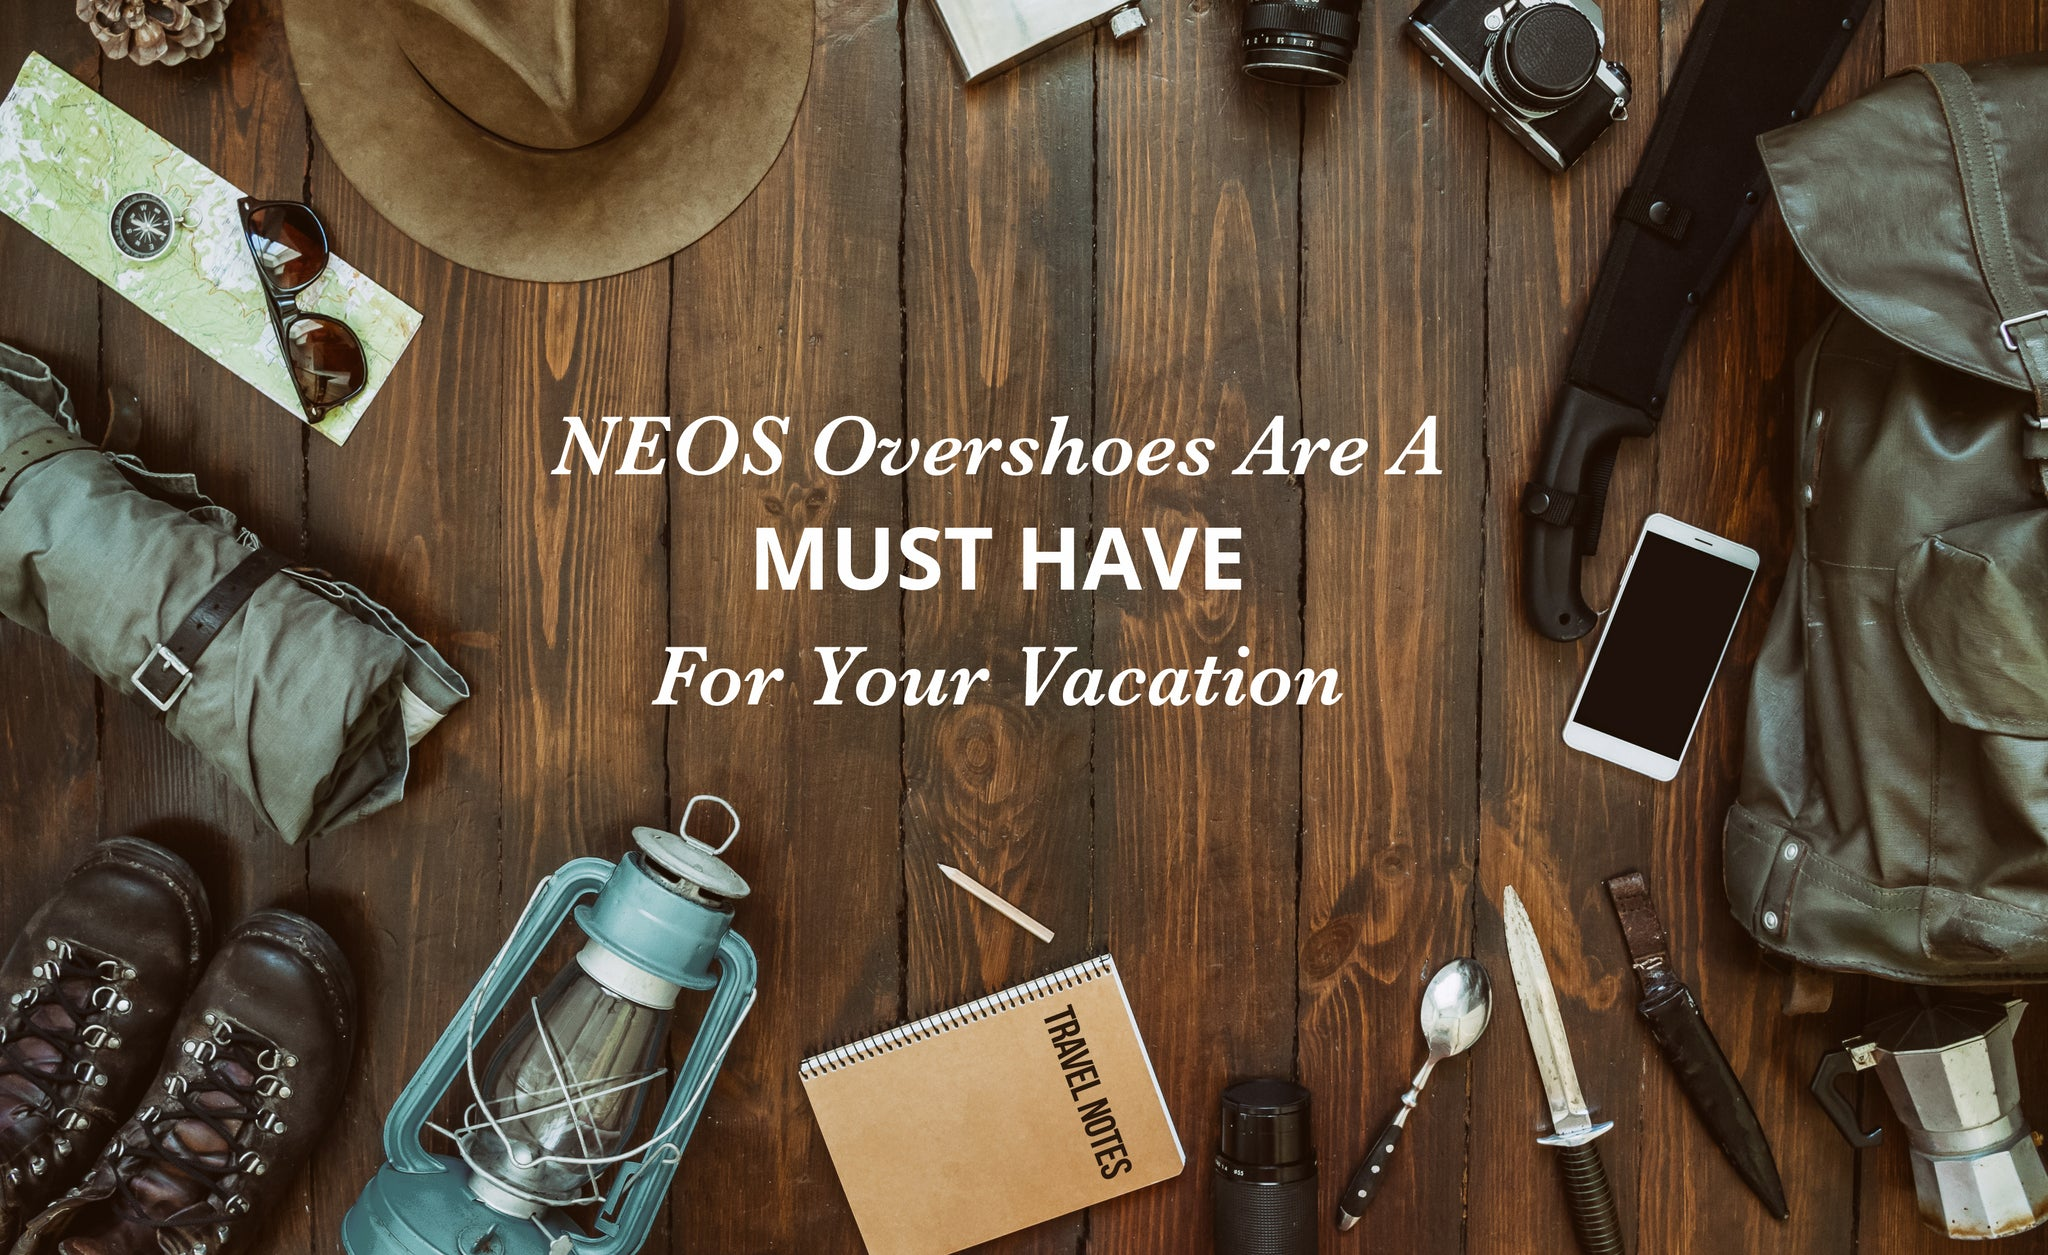 NEOS Are A Must Have For Your Vacation